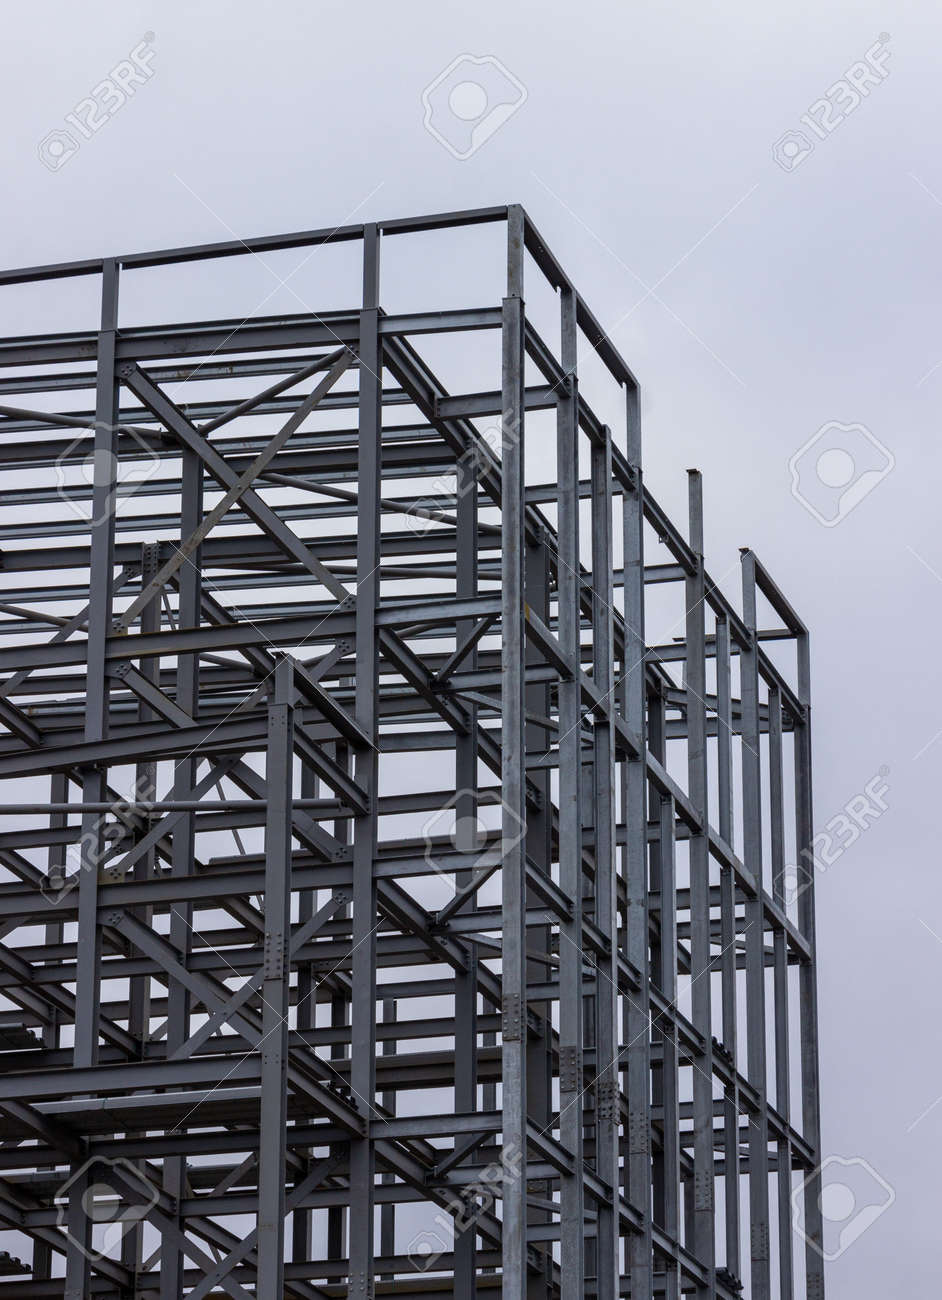 Metal frame of a builing in Glasgow, Scotland - 165355662